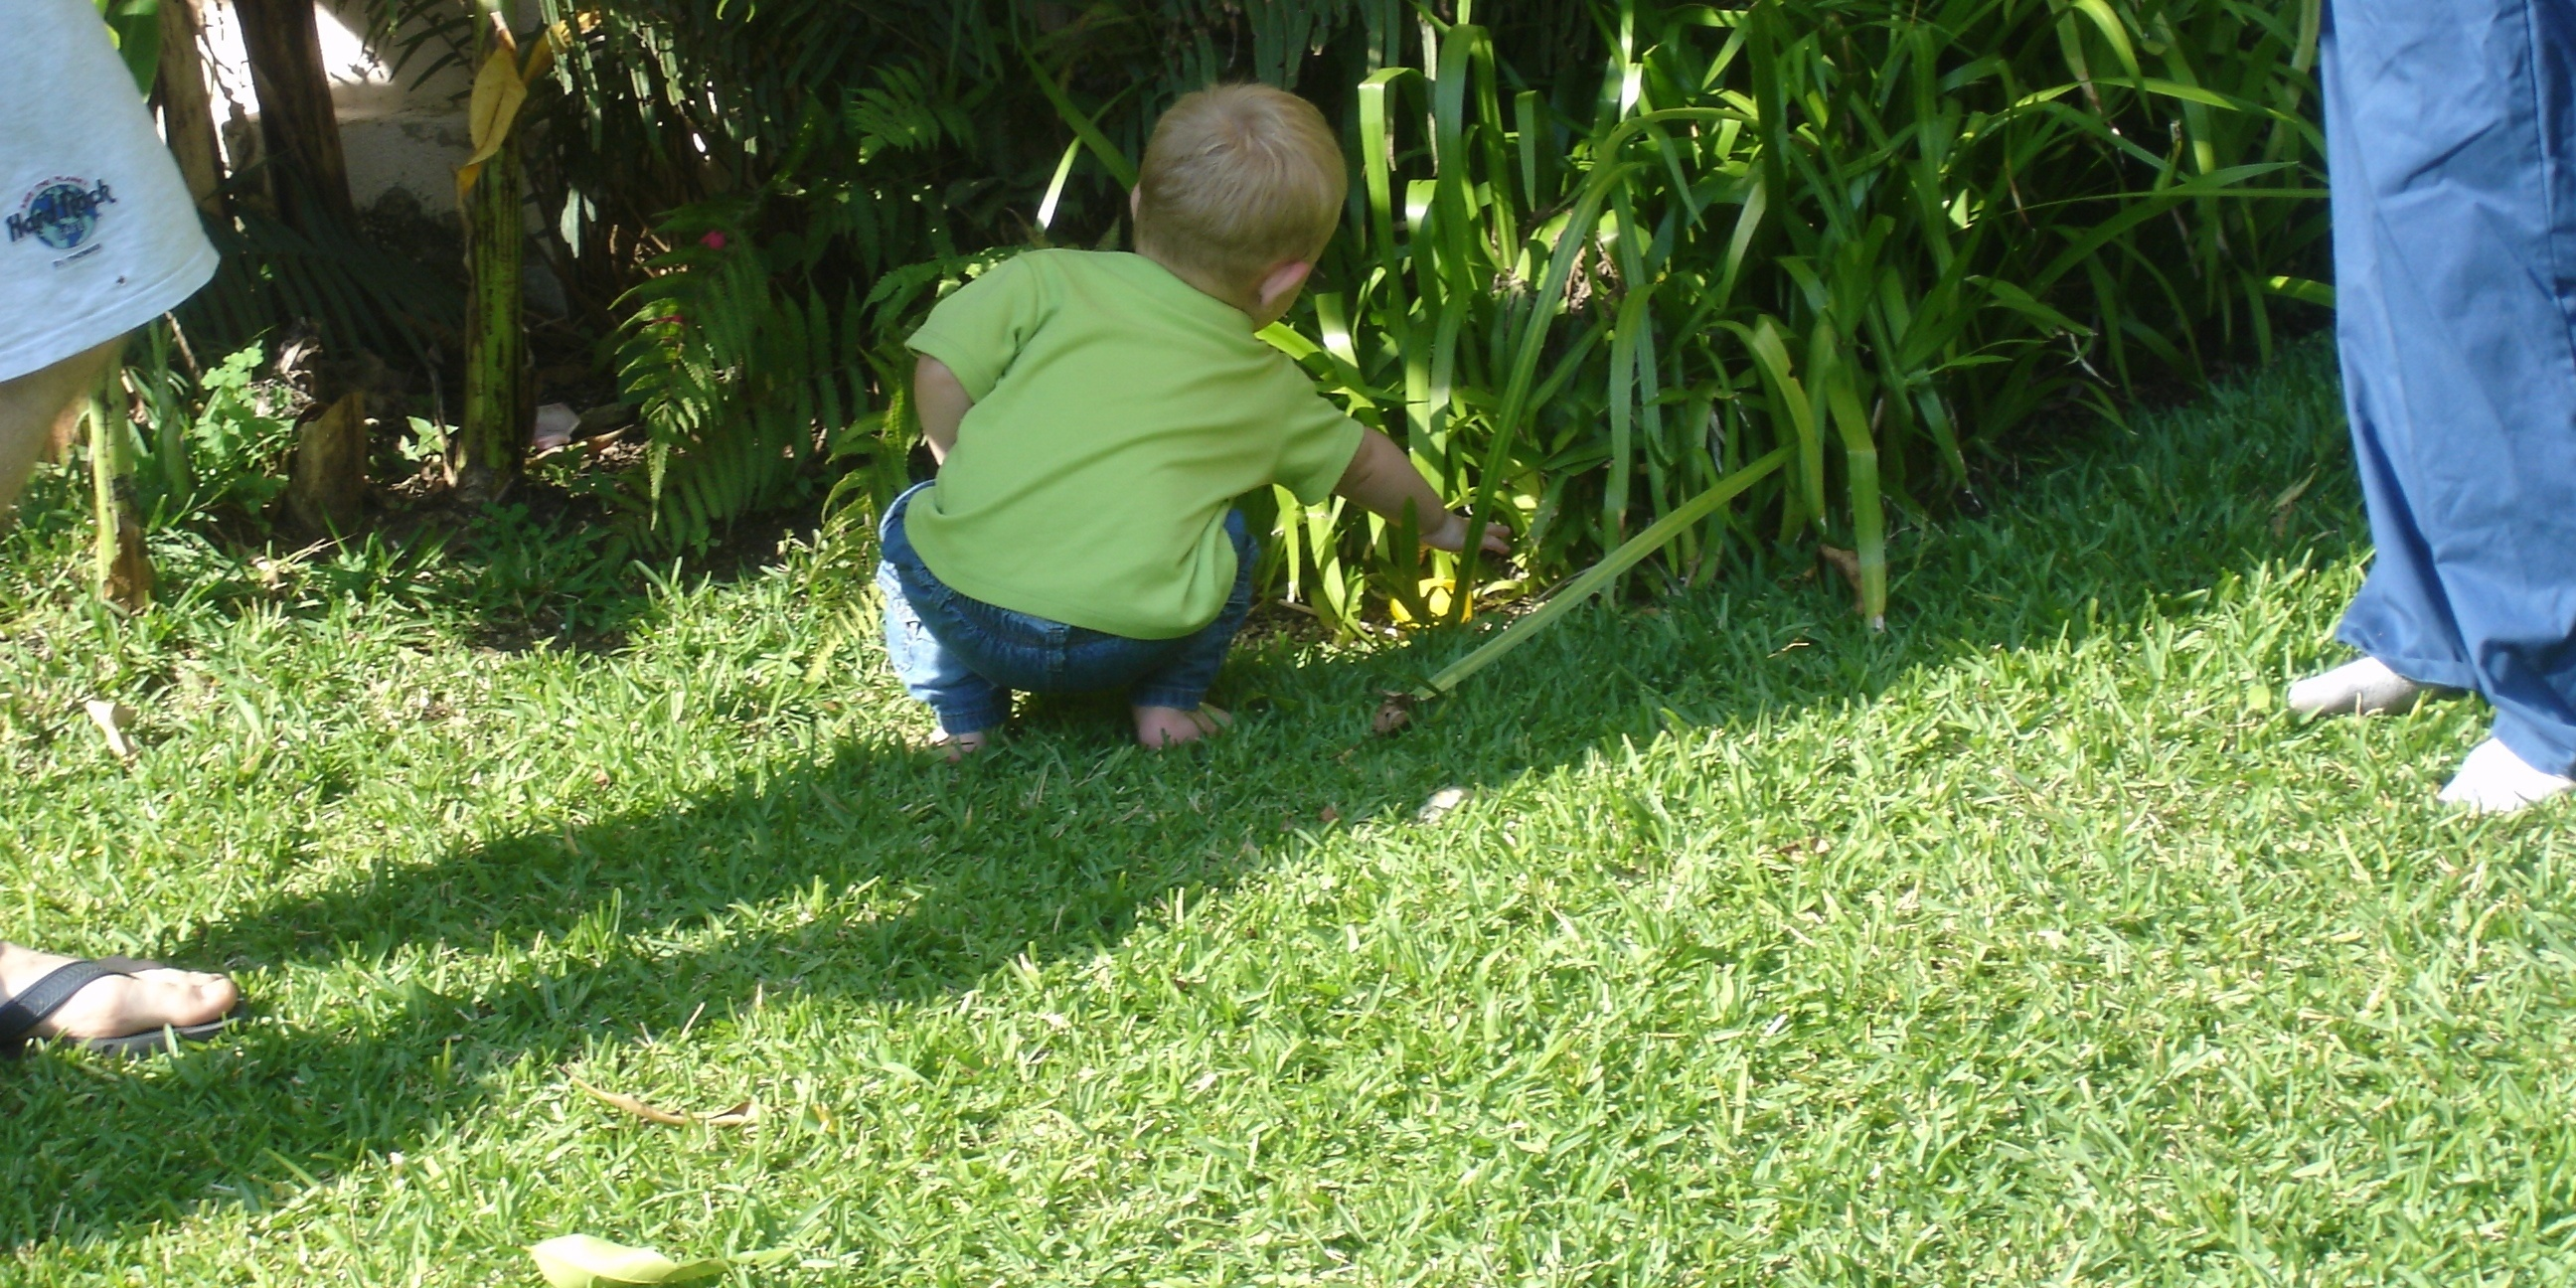 backyard-treasure-hunt.jpg